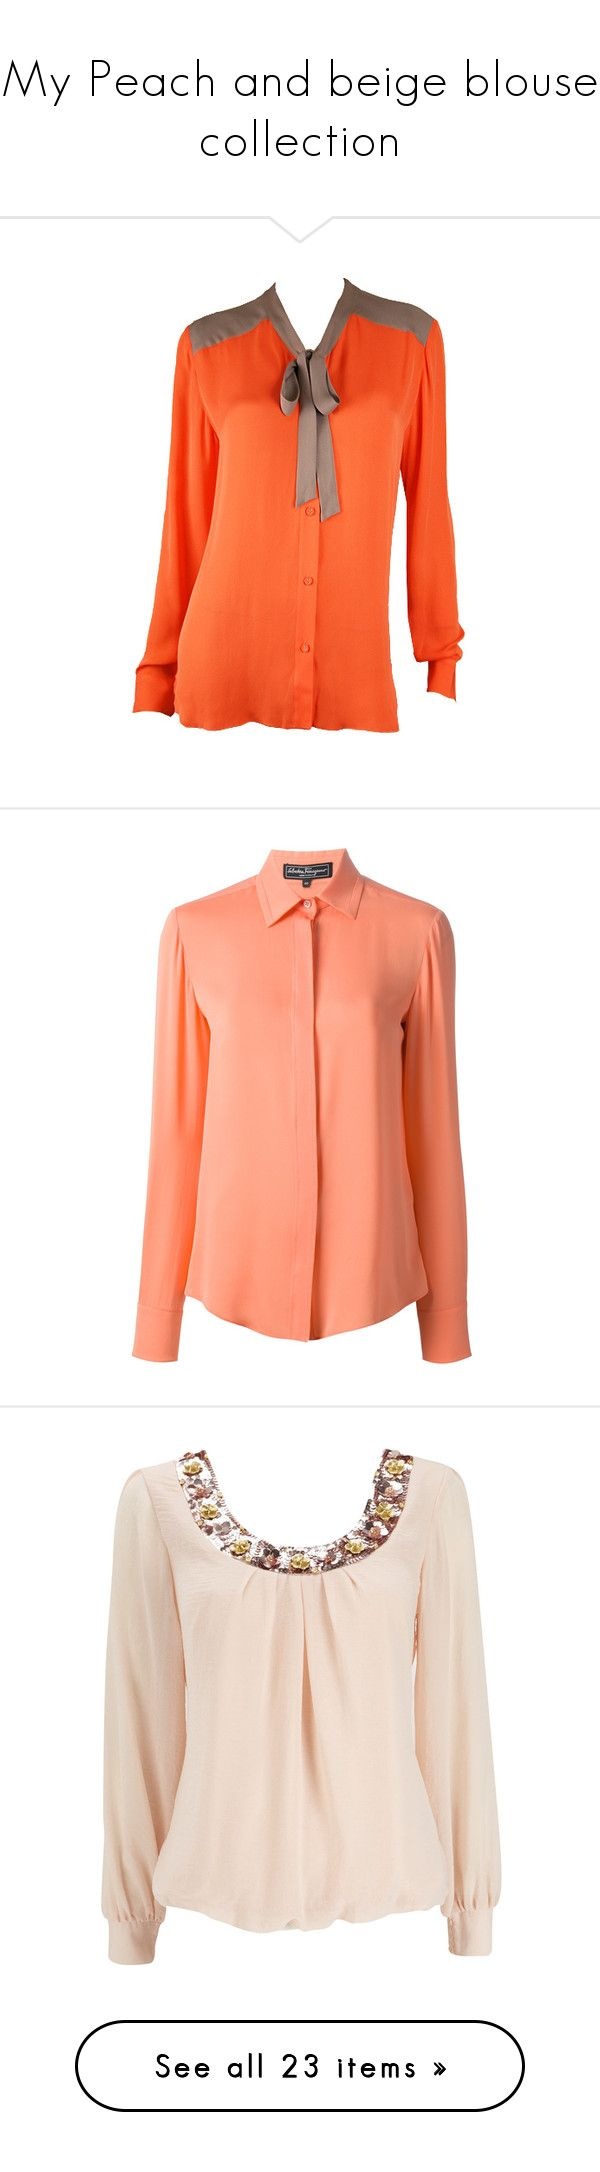 My Peach and beige blouse collection by diinangel on Polyvore featuring tops, blouses, shirts, blusas, orange blouse, collared blouse, long sleeve shirts, collared shirt, shirts & blouses and collar top